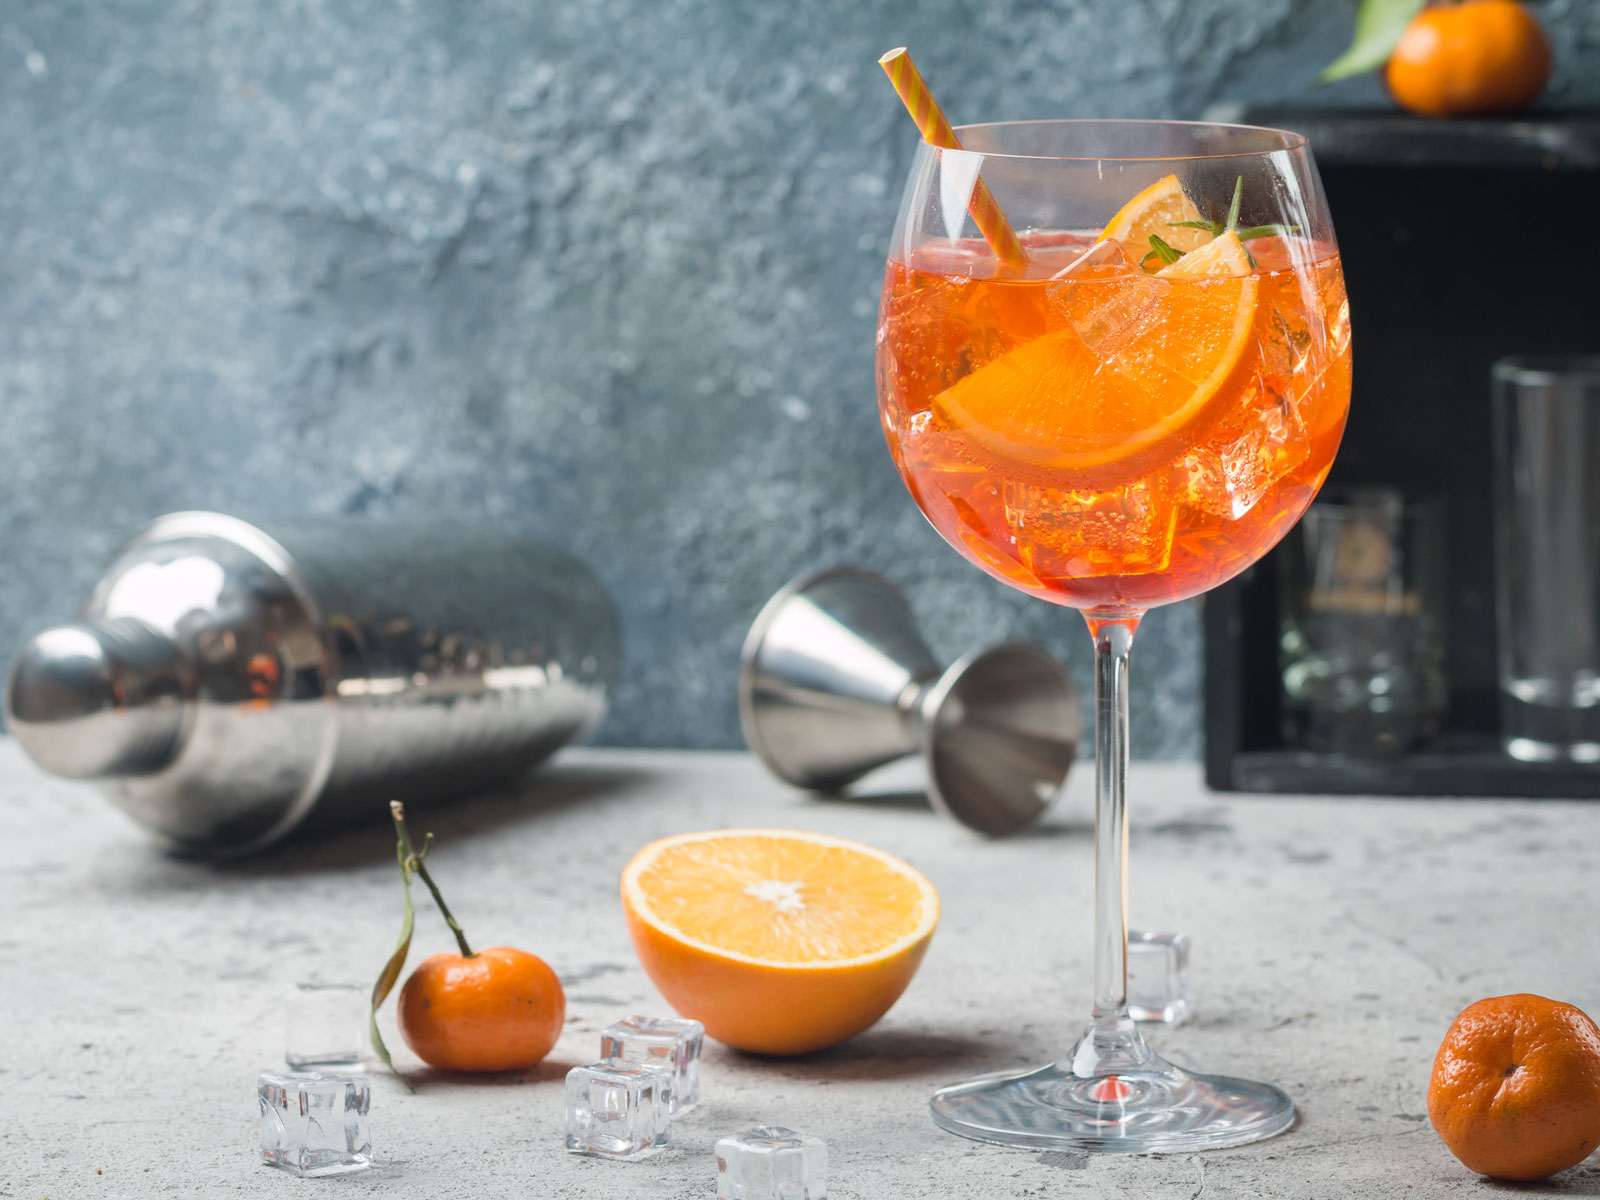 Brooklyn Bar to Host 'Rally for Aperol' in Response to Spritz Backlash